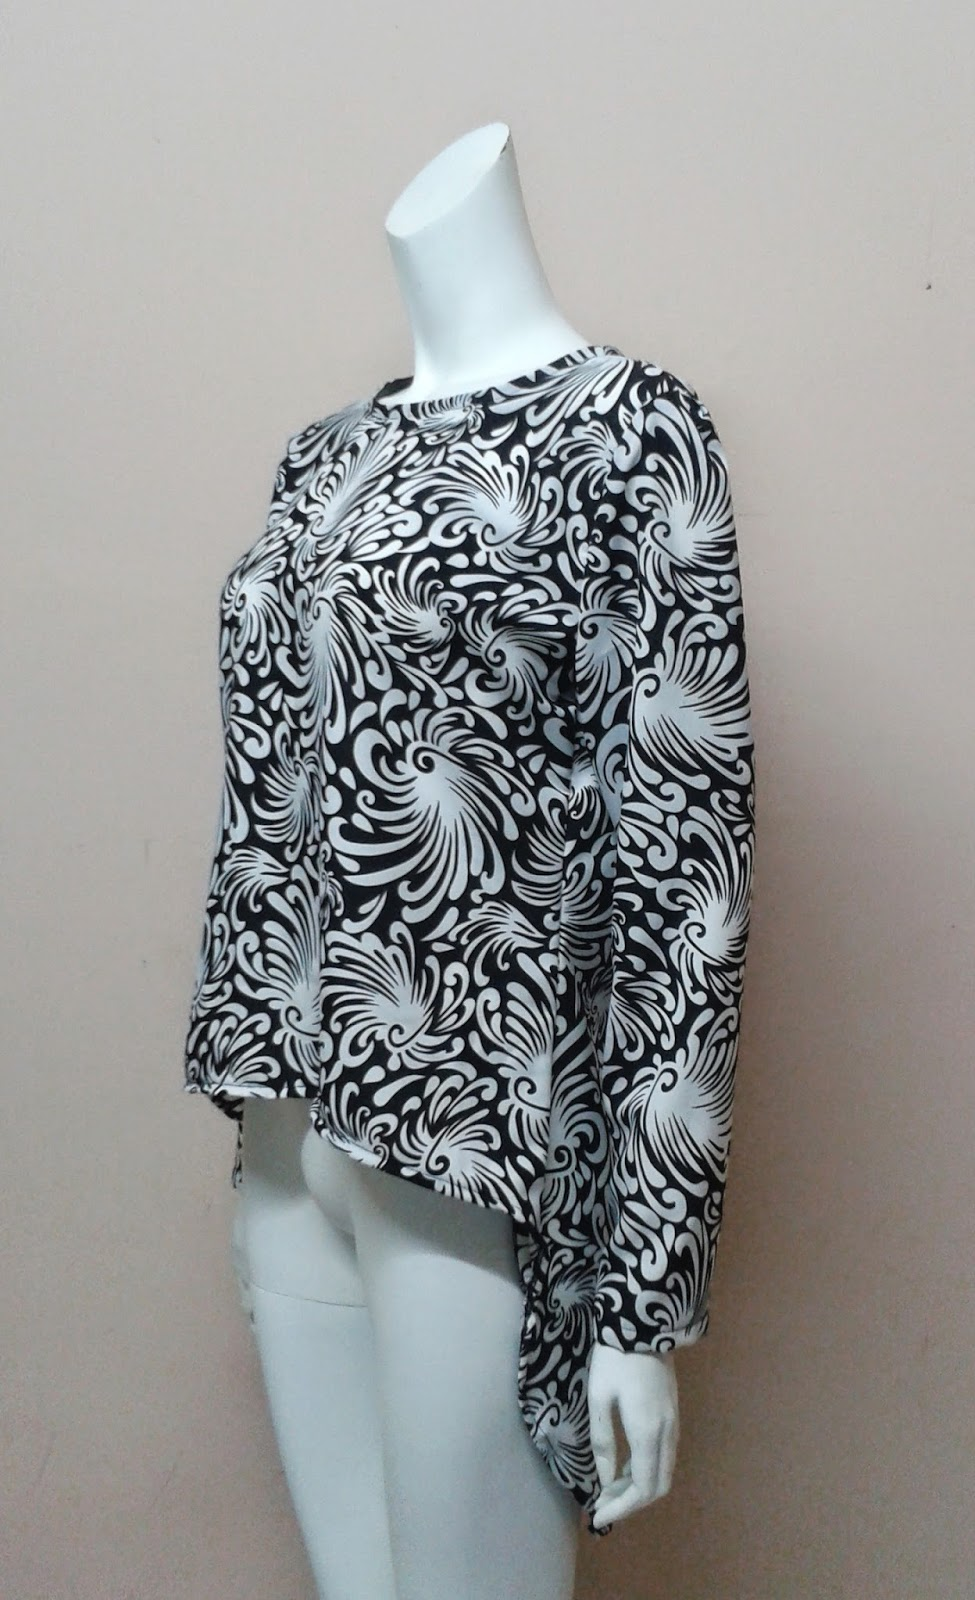 http://dzethiniecouture.wix.com/dzethiniecouture#!product/prd1/1975967545/spiral-printed-fishtail-blouse